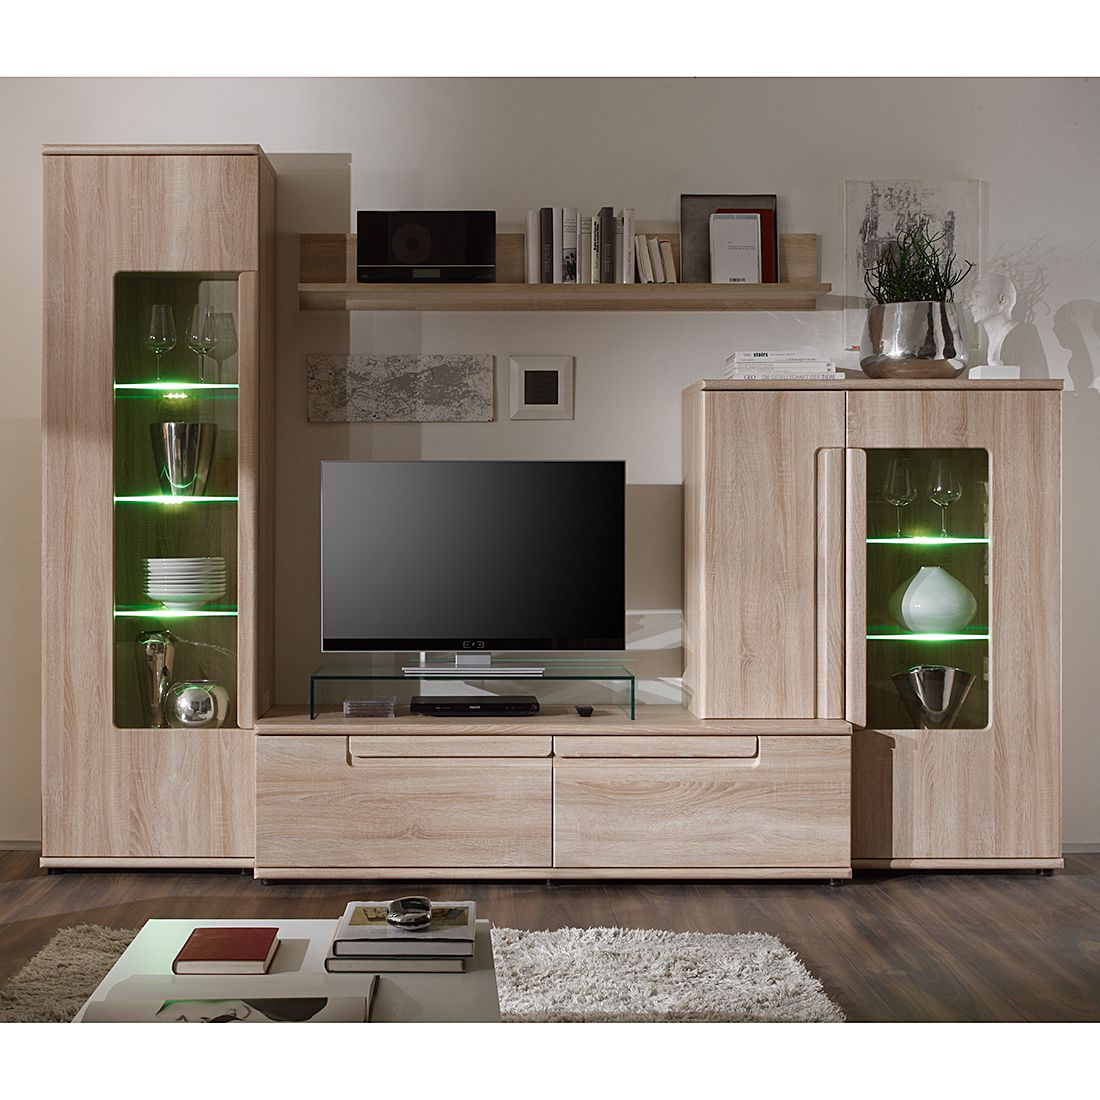 meuble tv dangle chene gris brooklyn solutions pour la d coration int rieure de votre maison. Black Bedroom Furniture Sets. Home Design Ideas